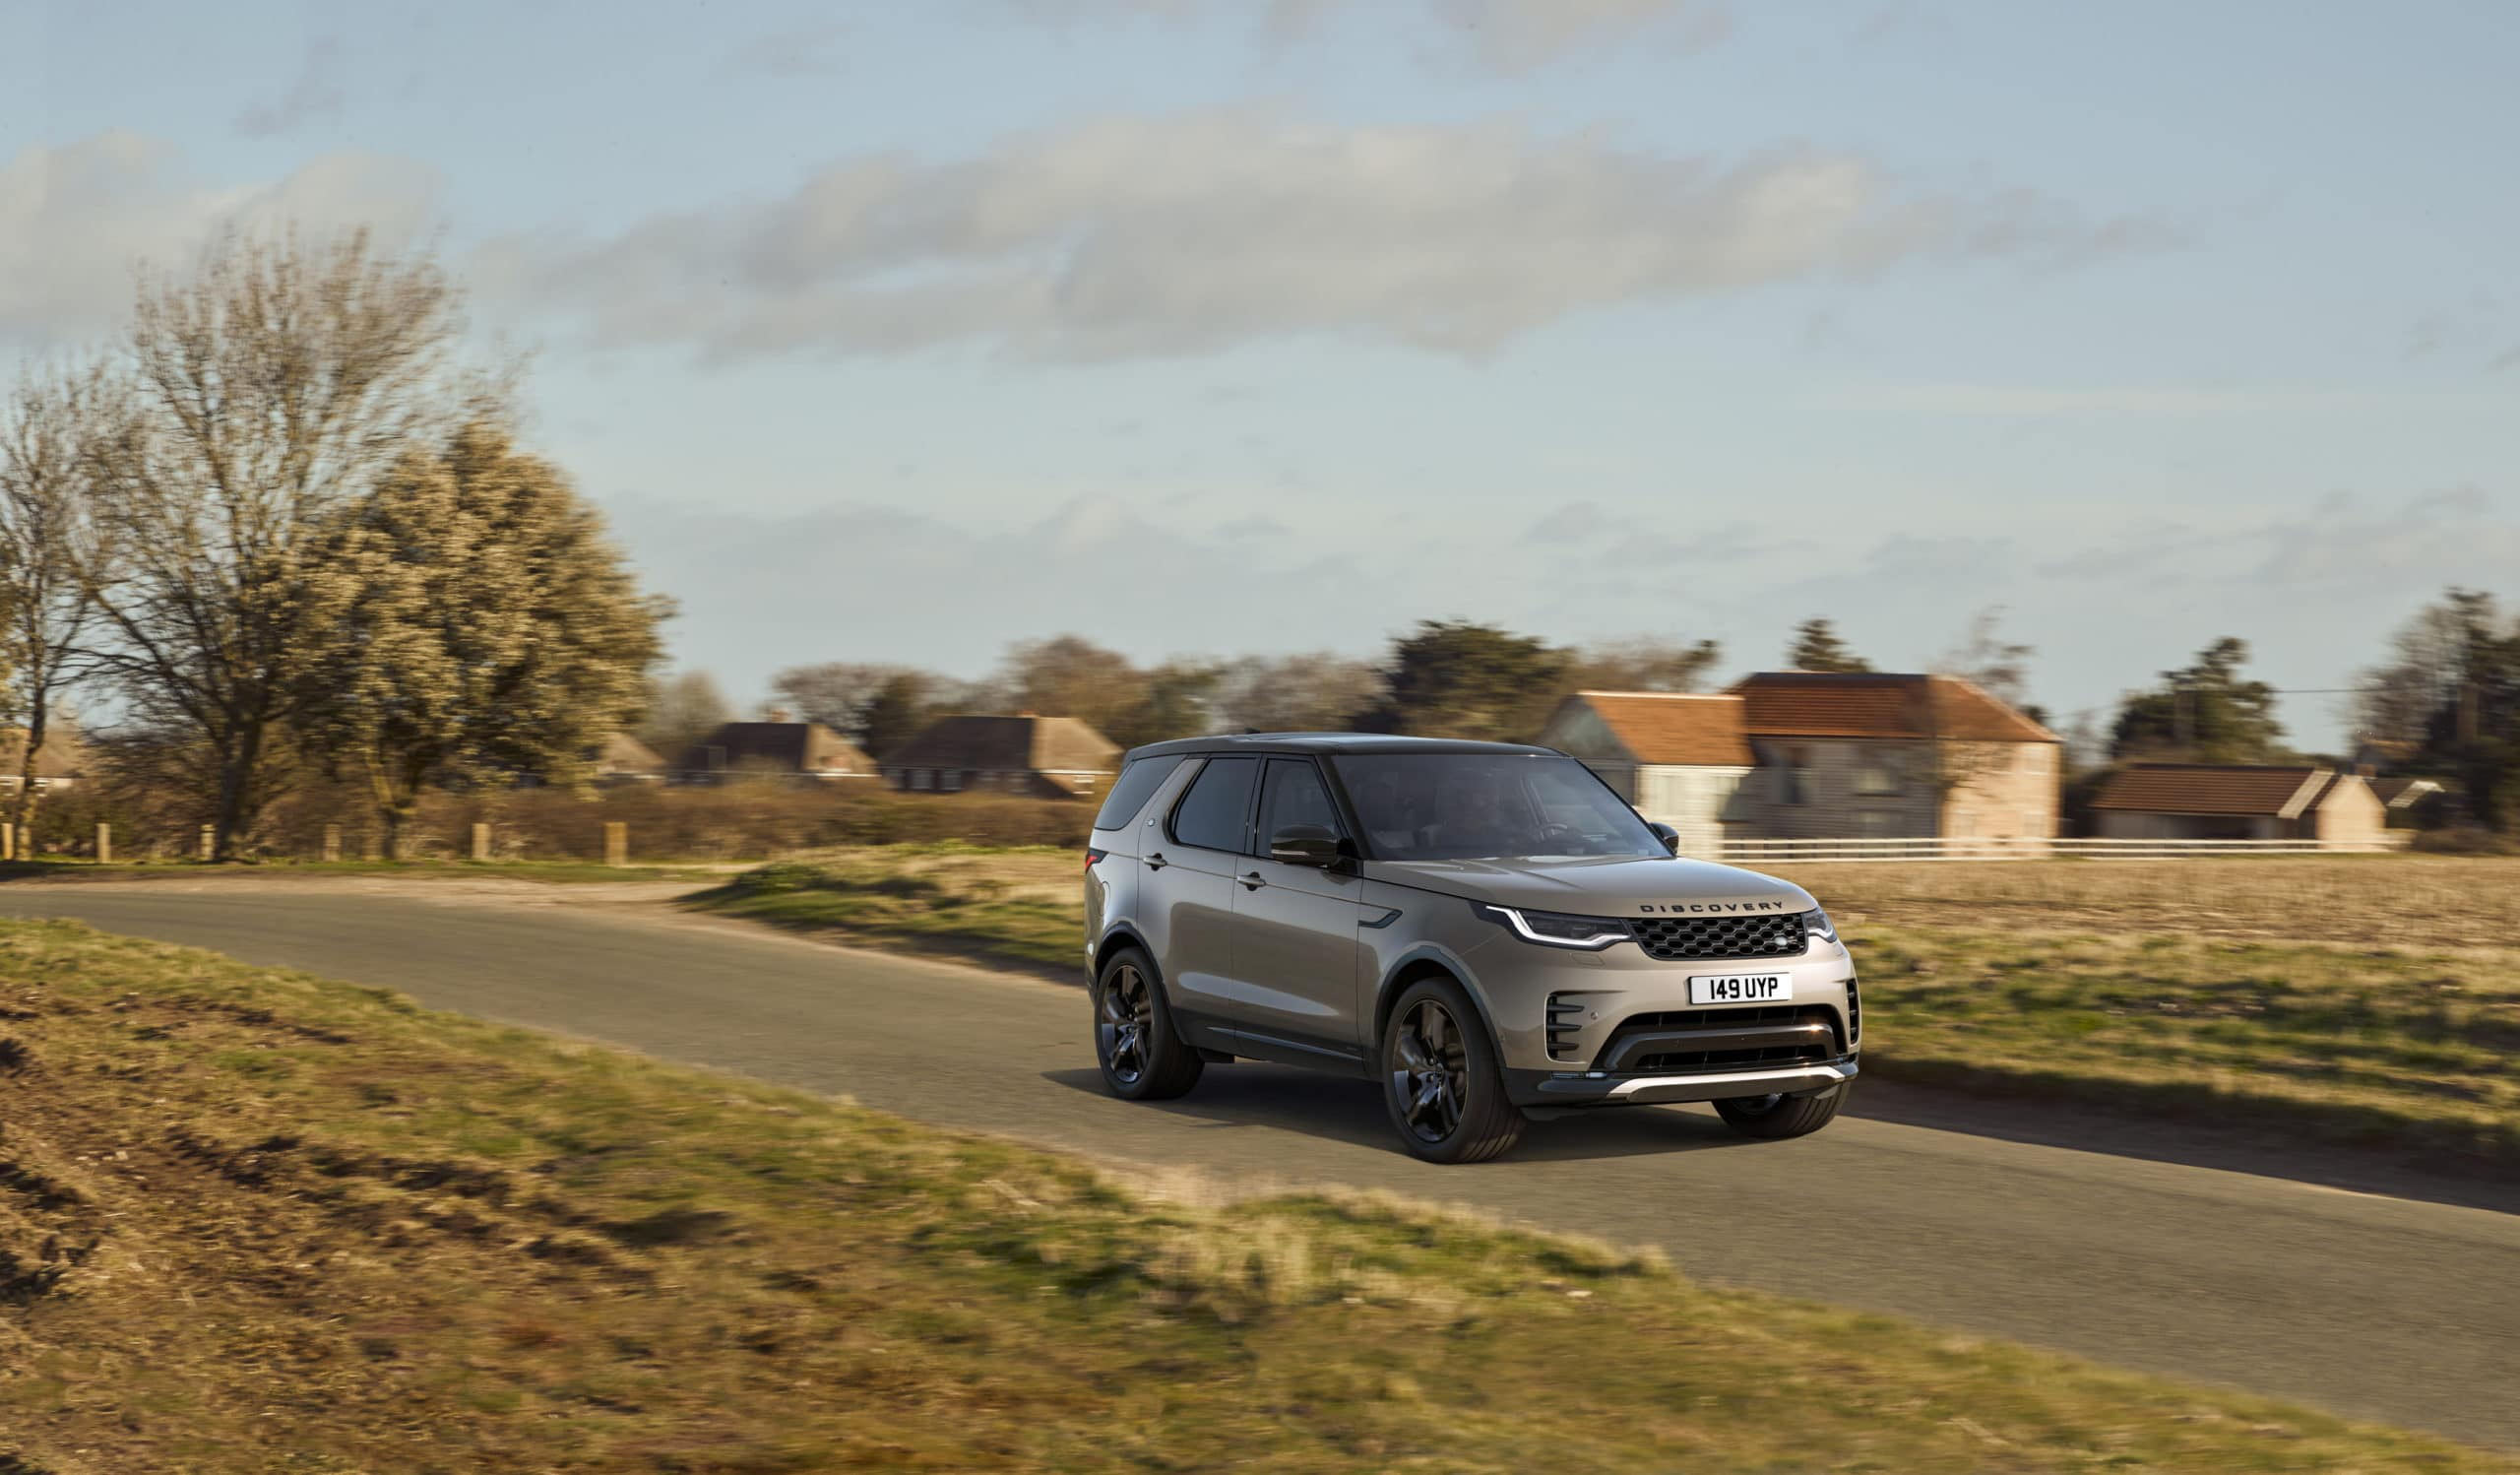 2021 Land Rover Discovery 7 scaled